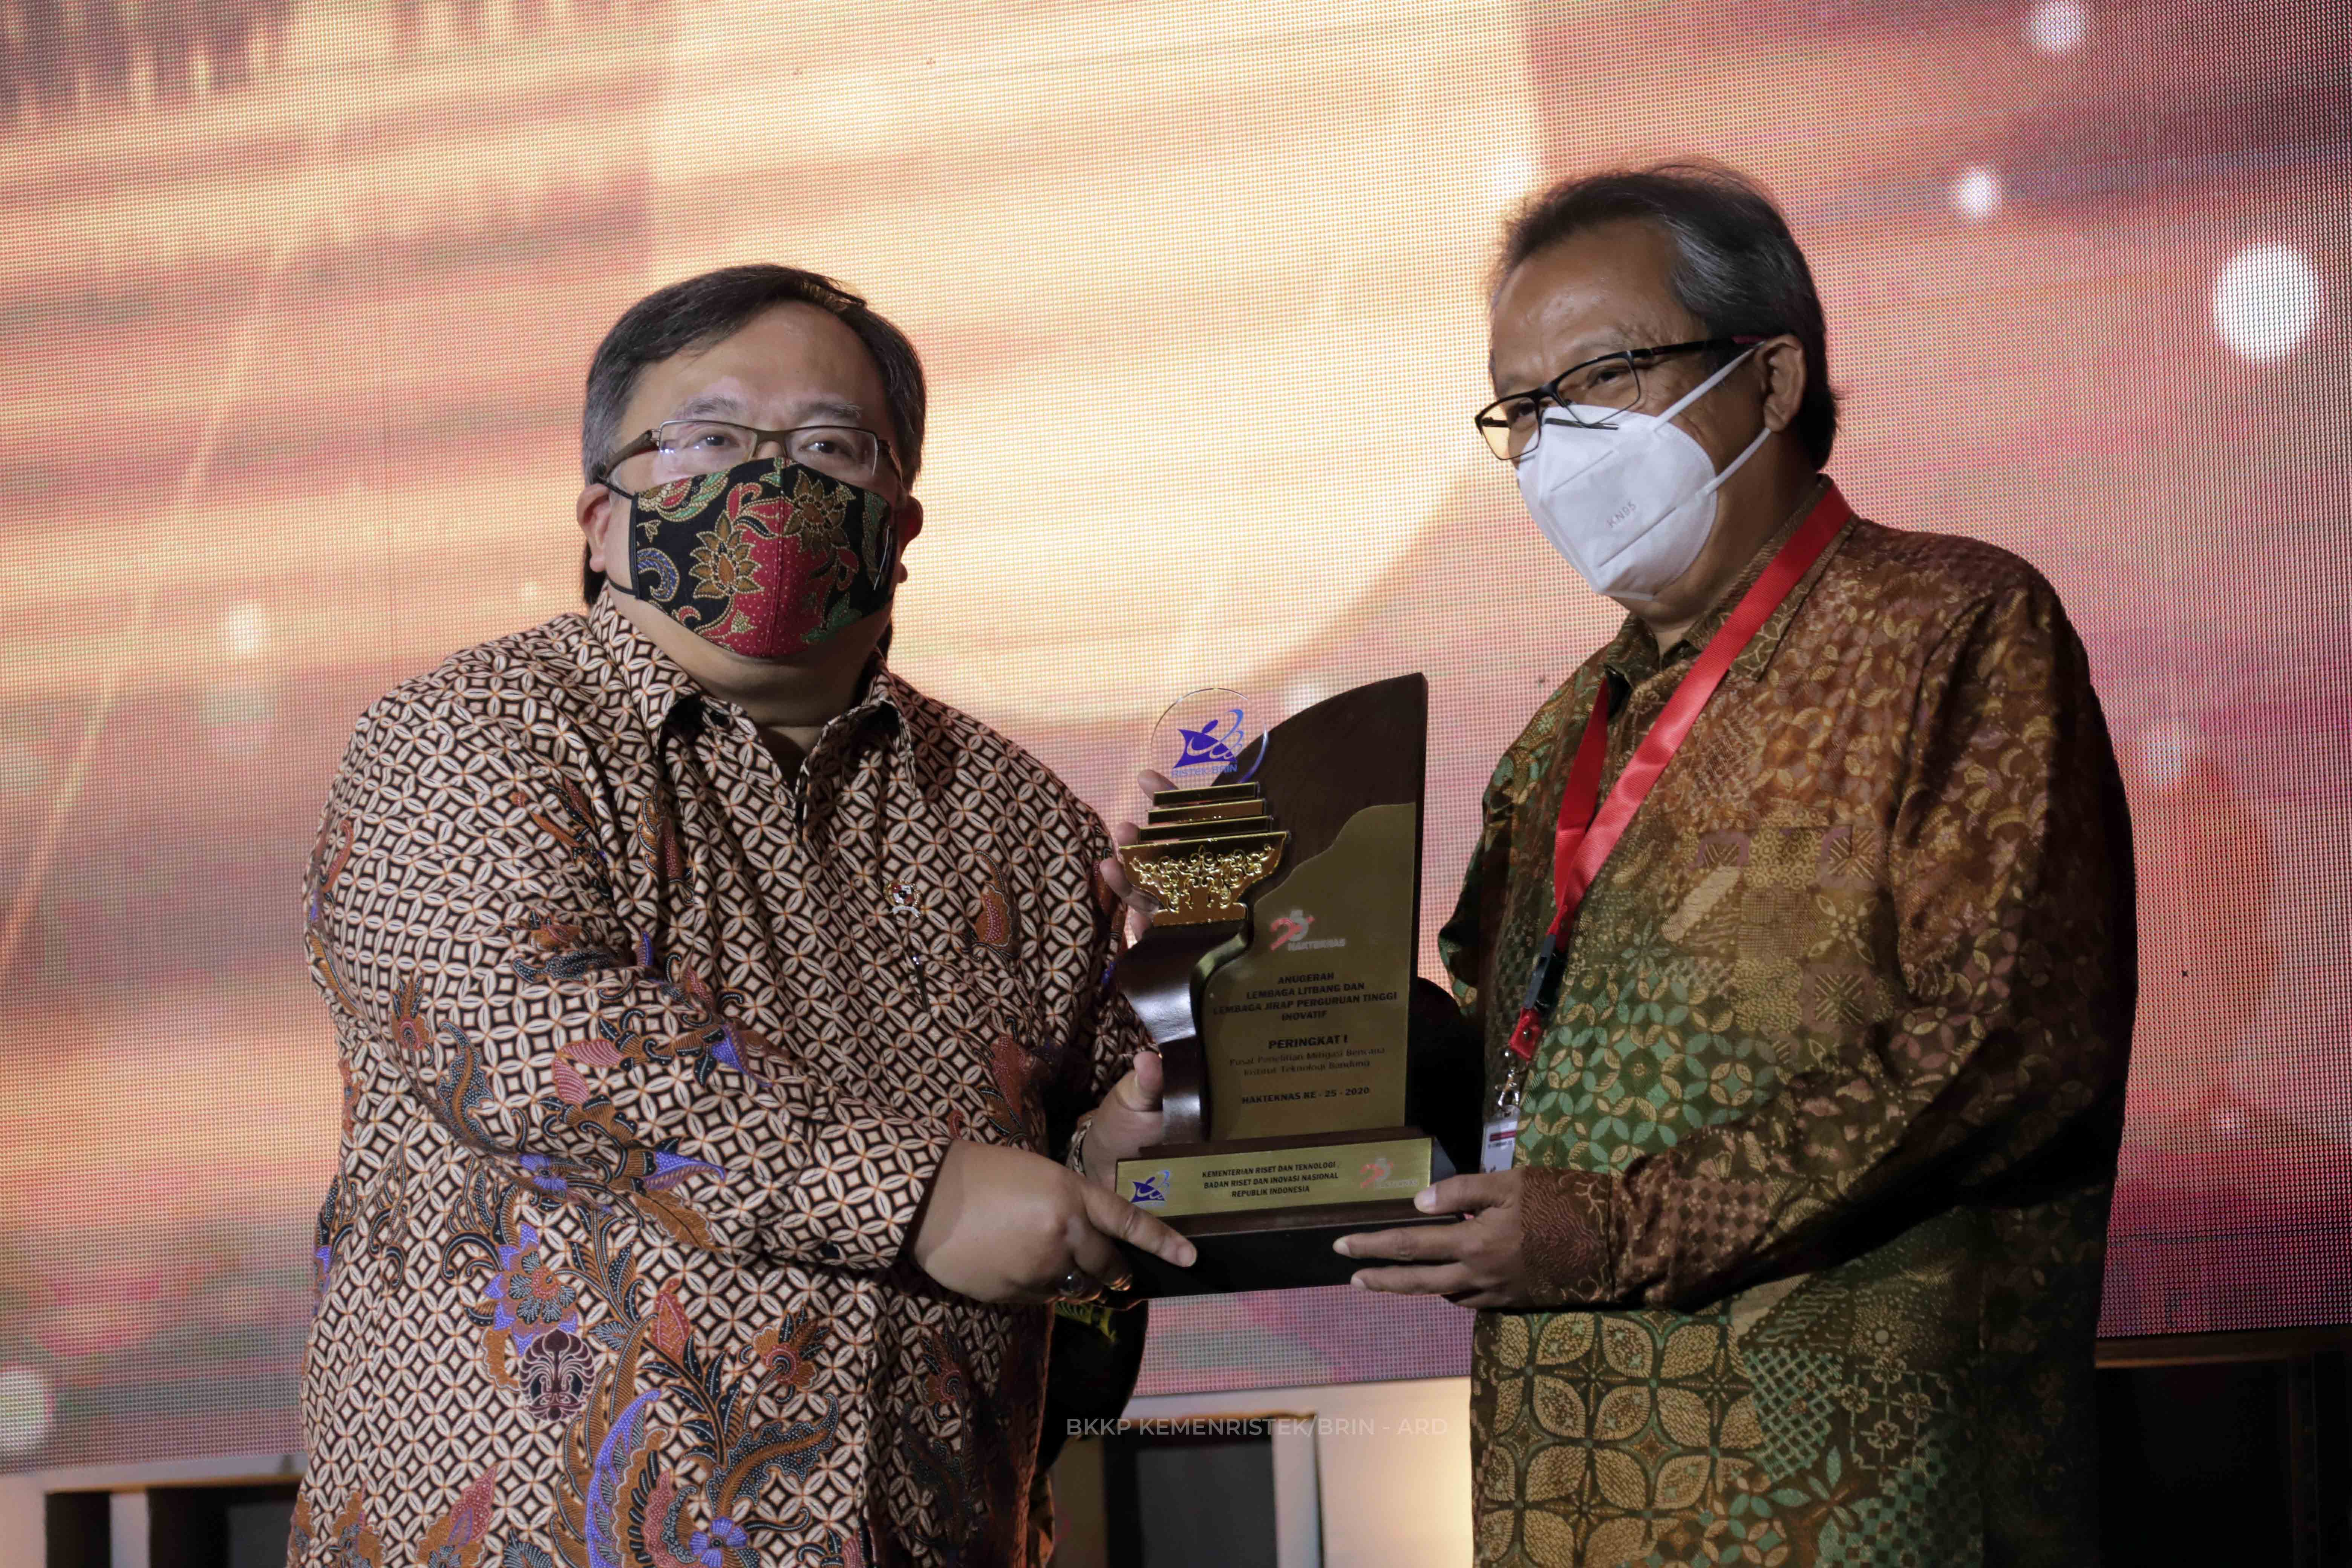 itb-won-the-1st-rank-of-the-best-innovative-higher-education-award-in-2020